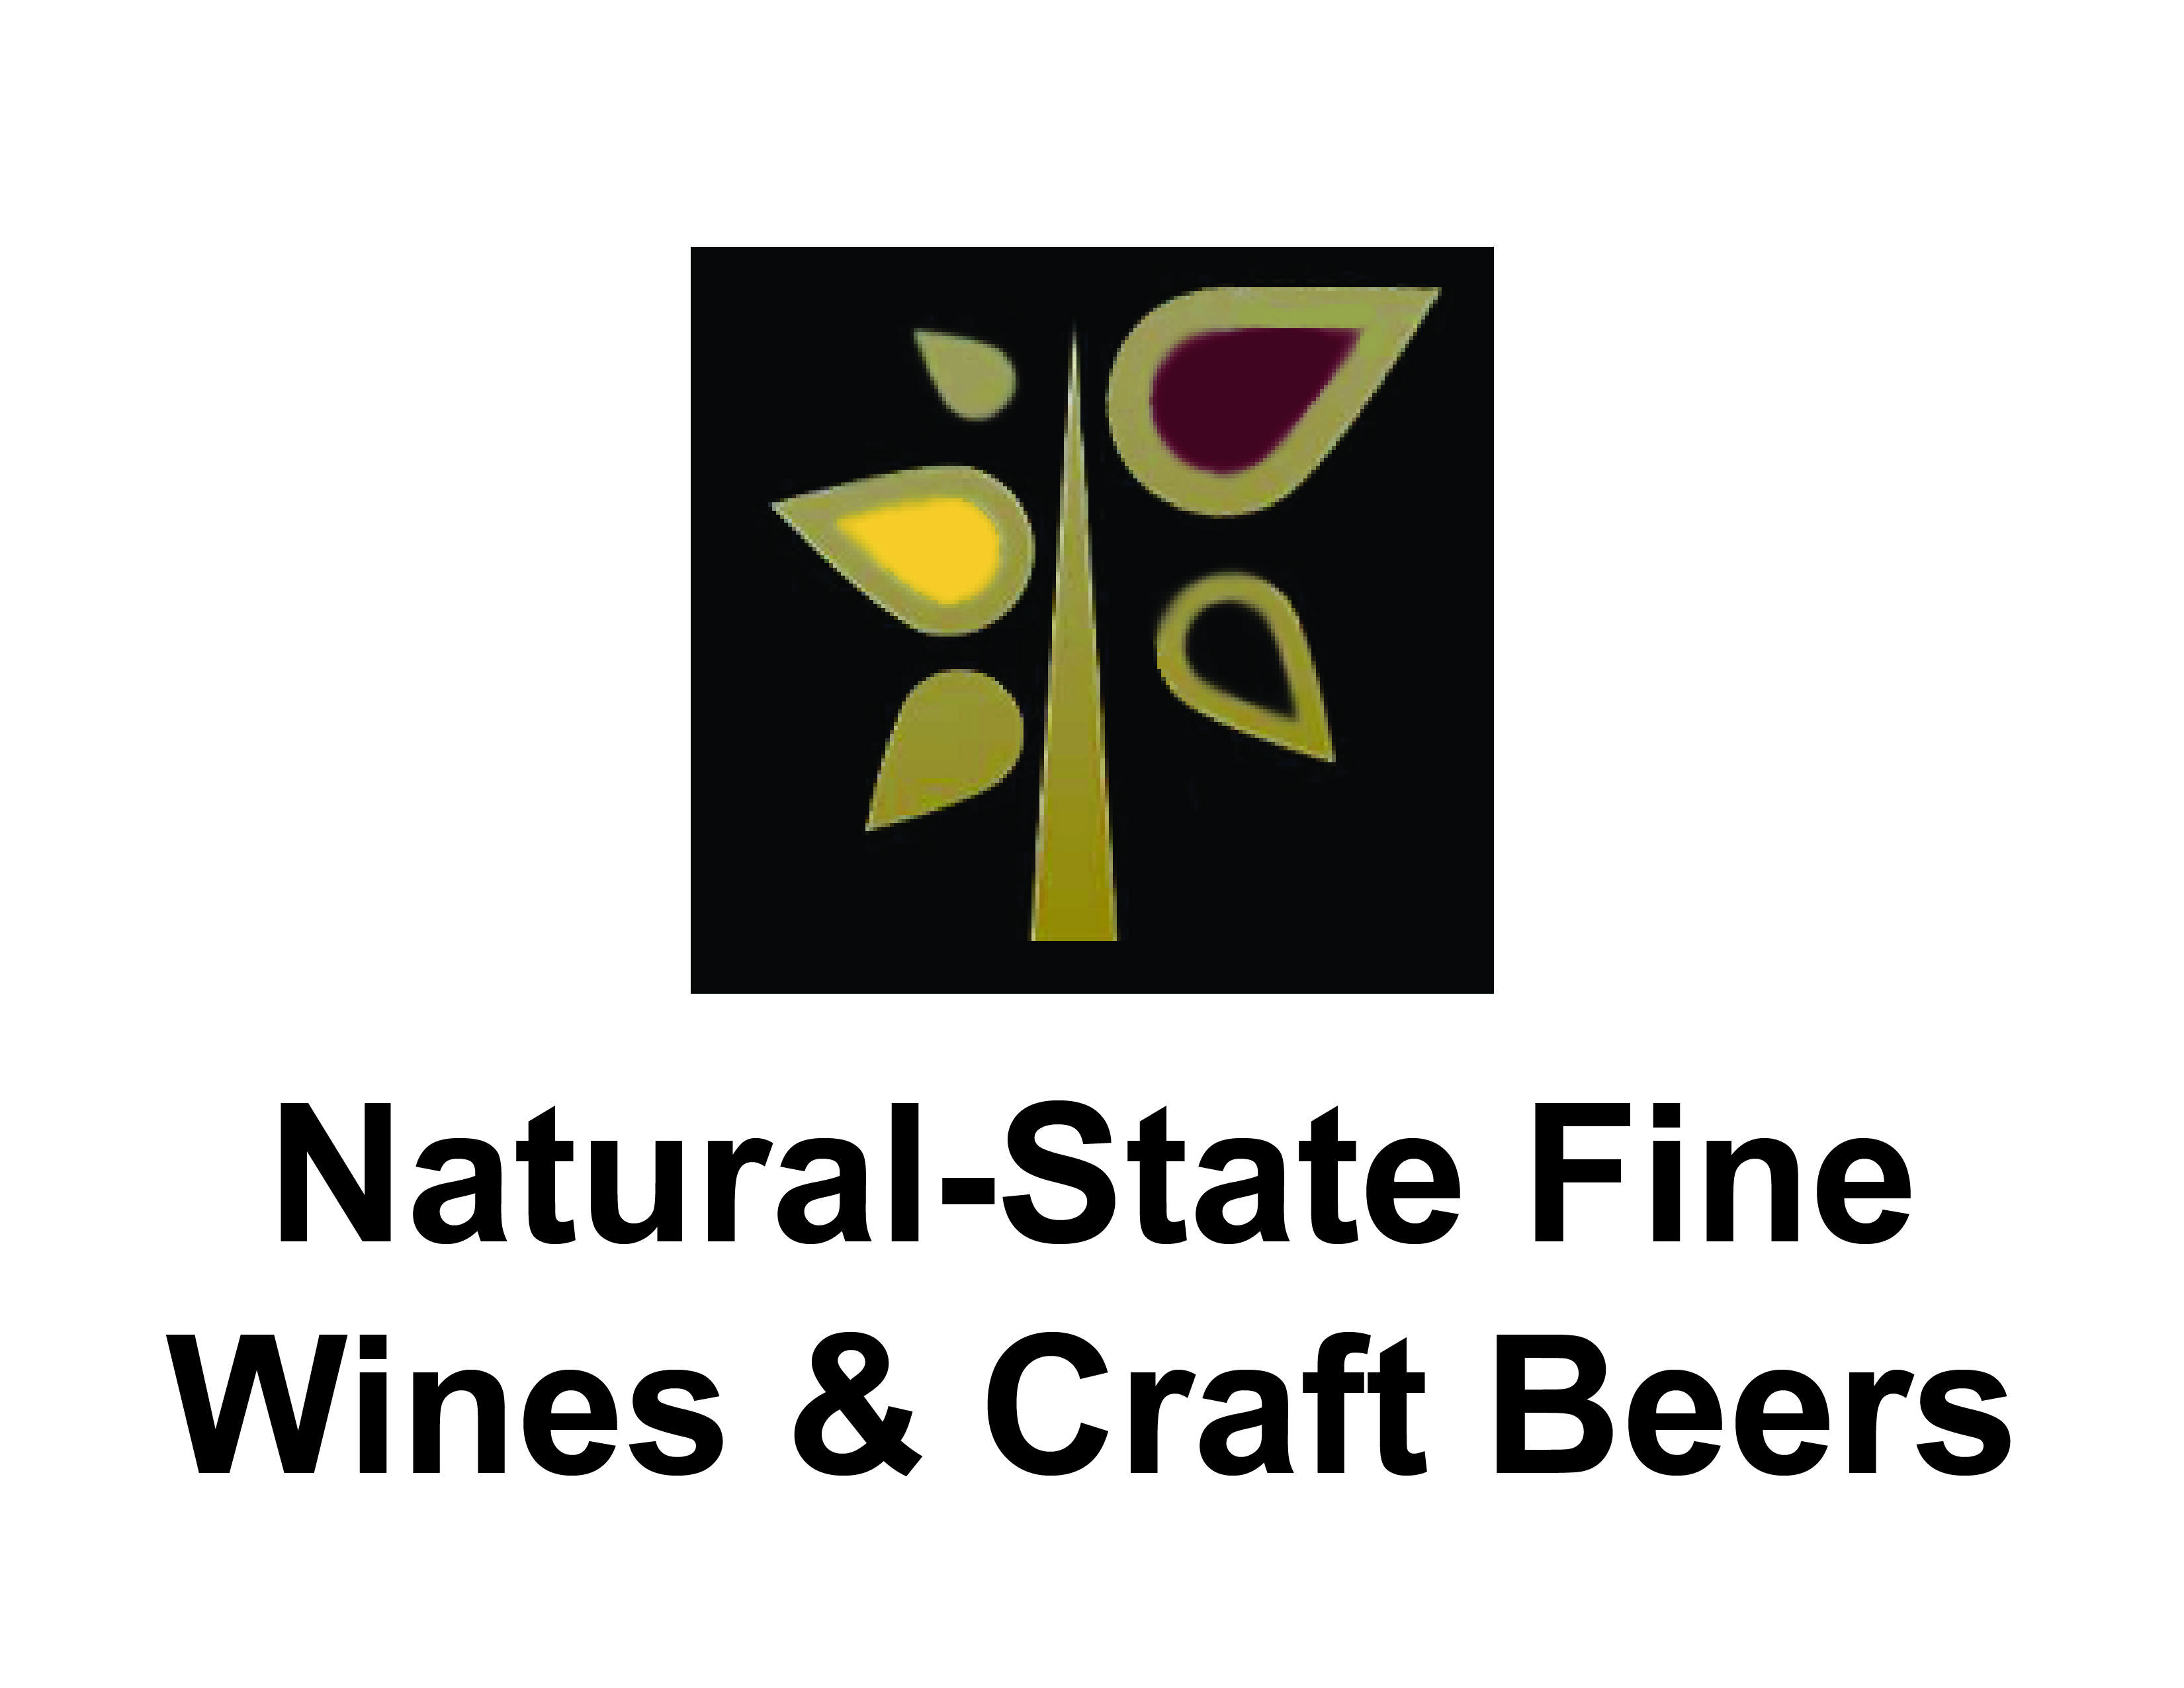 Natural-State Fine Wines & Craft Beers